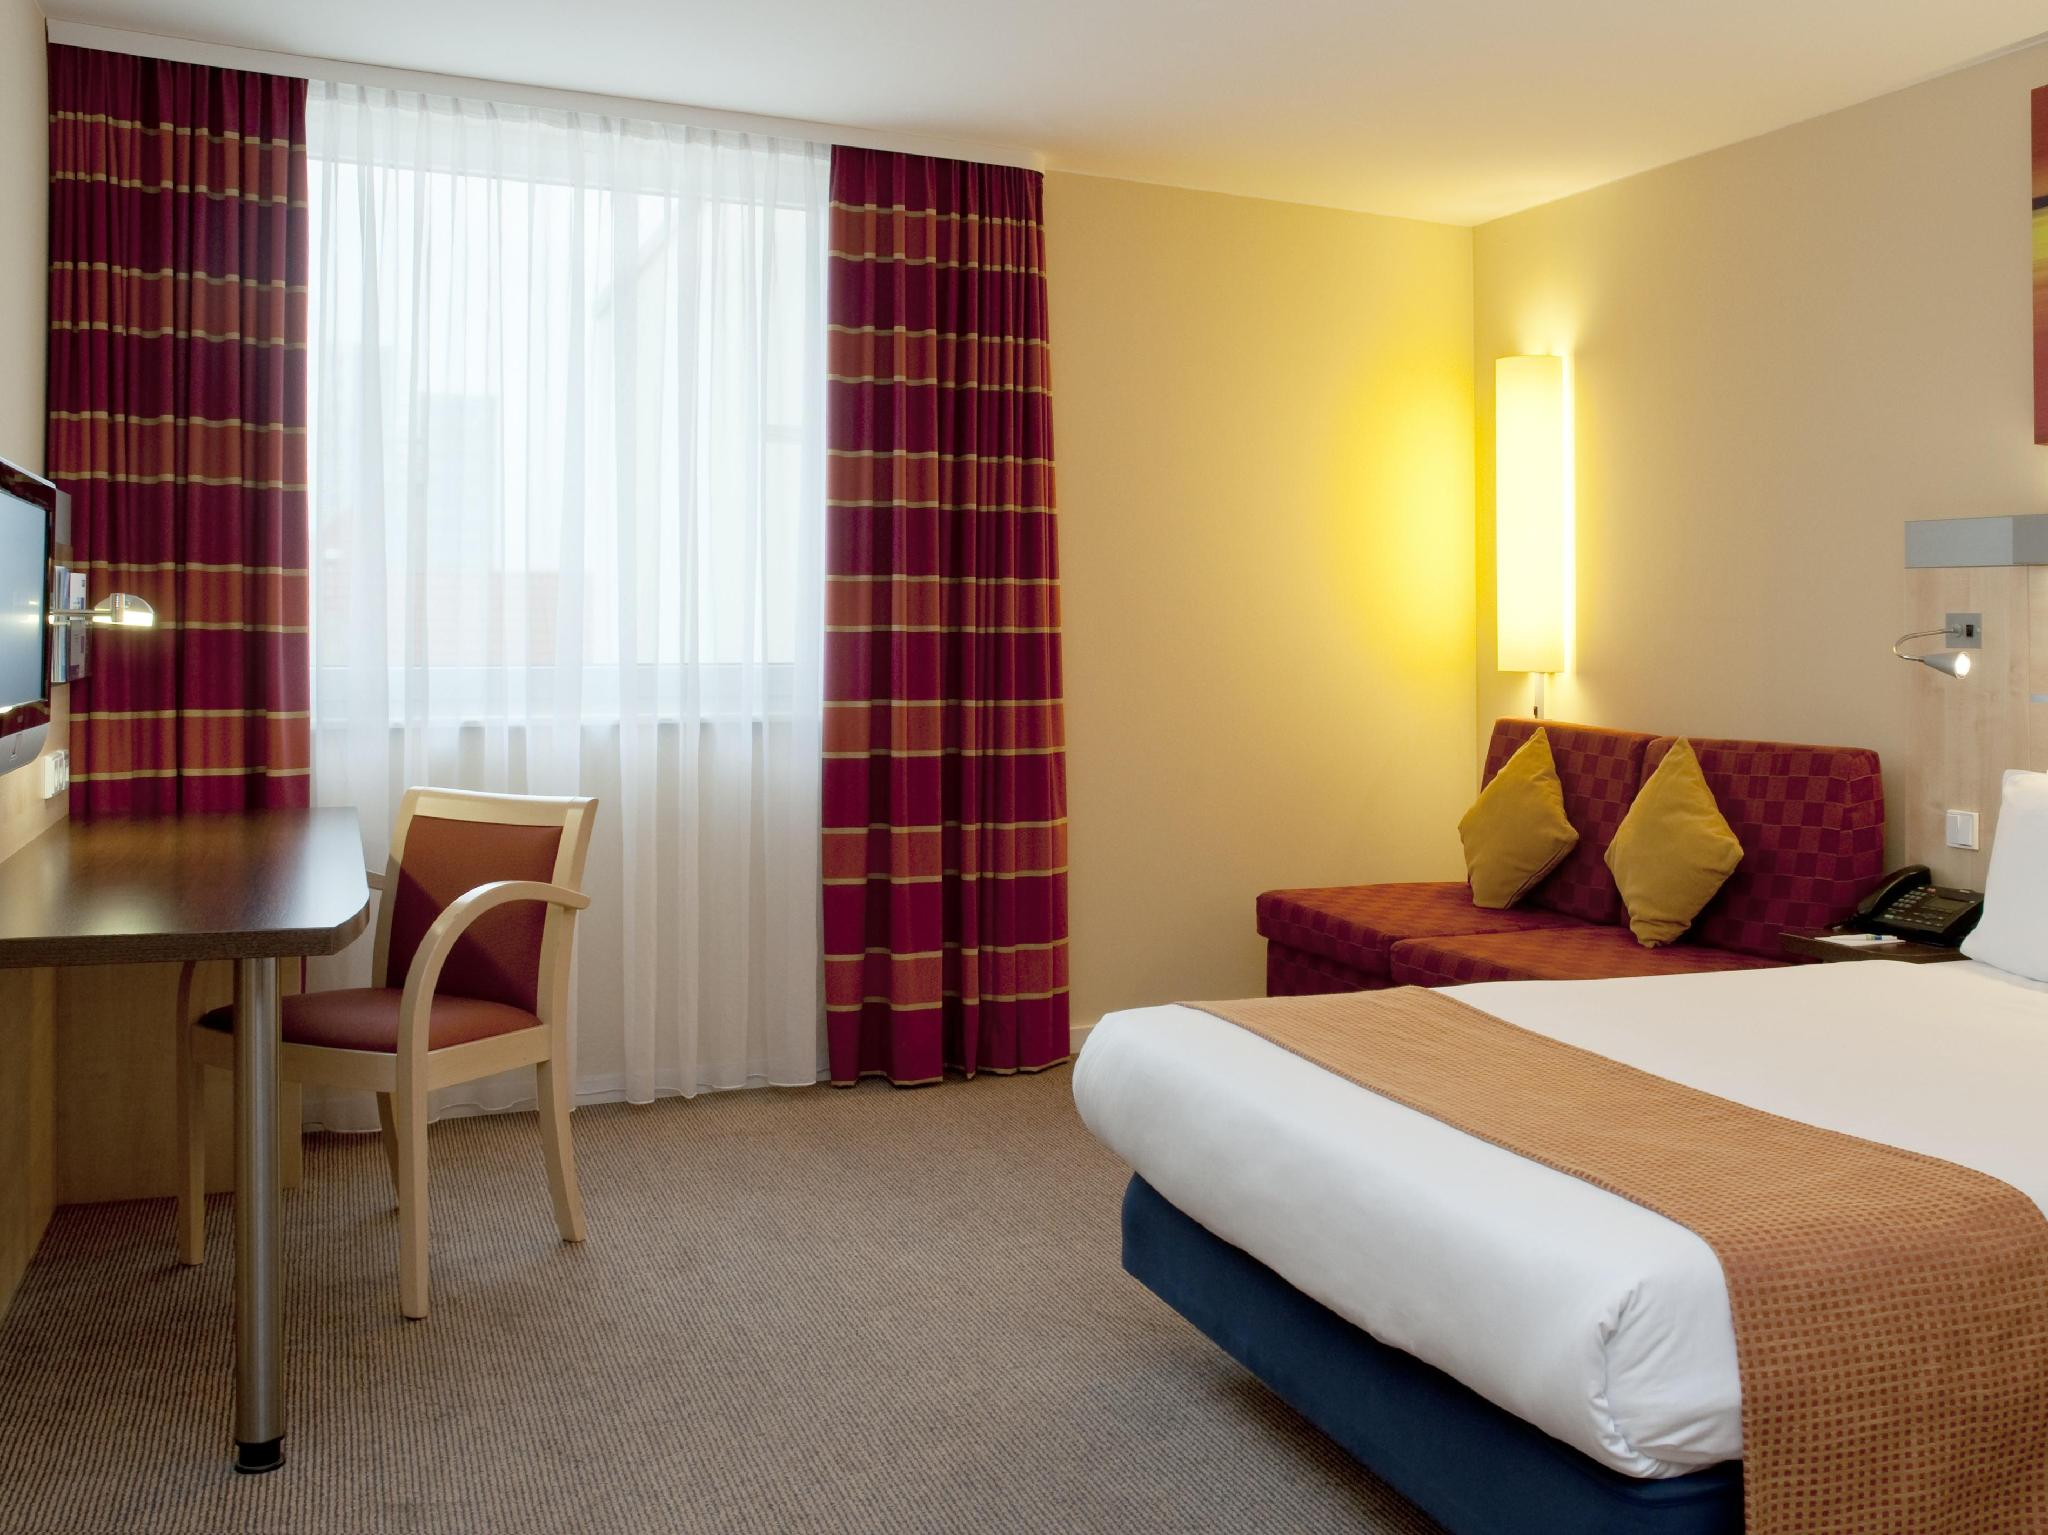 Holiday Inn Express Berlin City Centre West Berliin - Hotelli välisilme